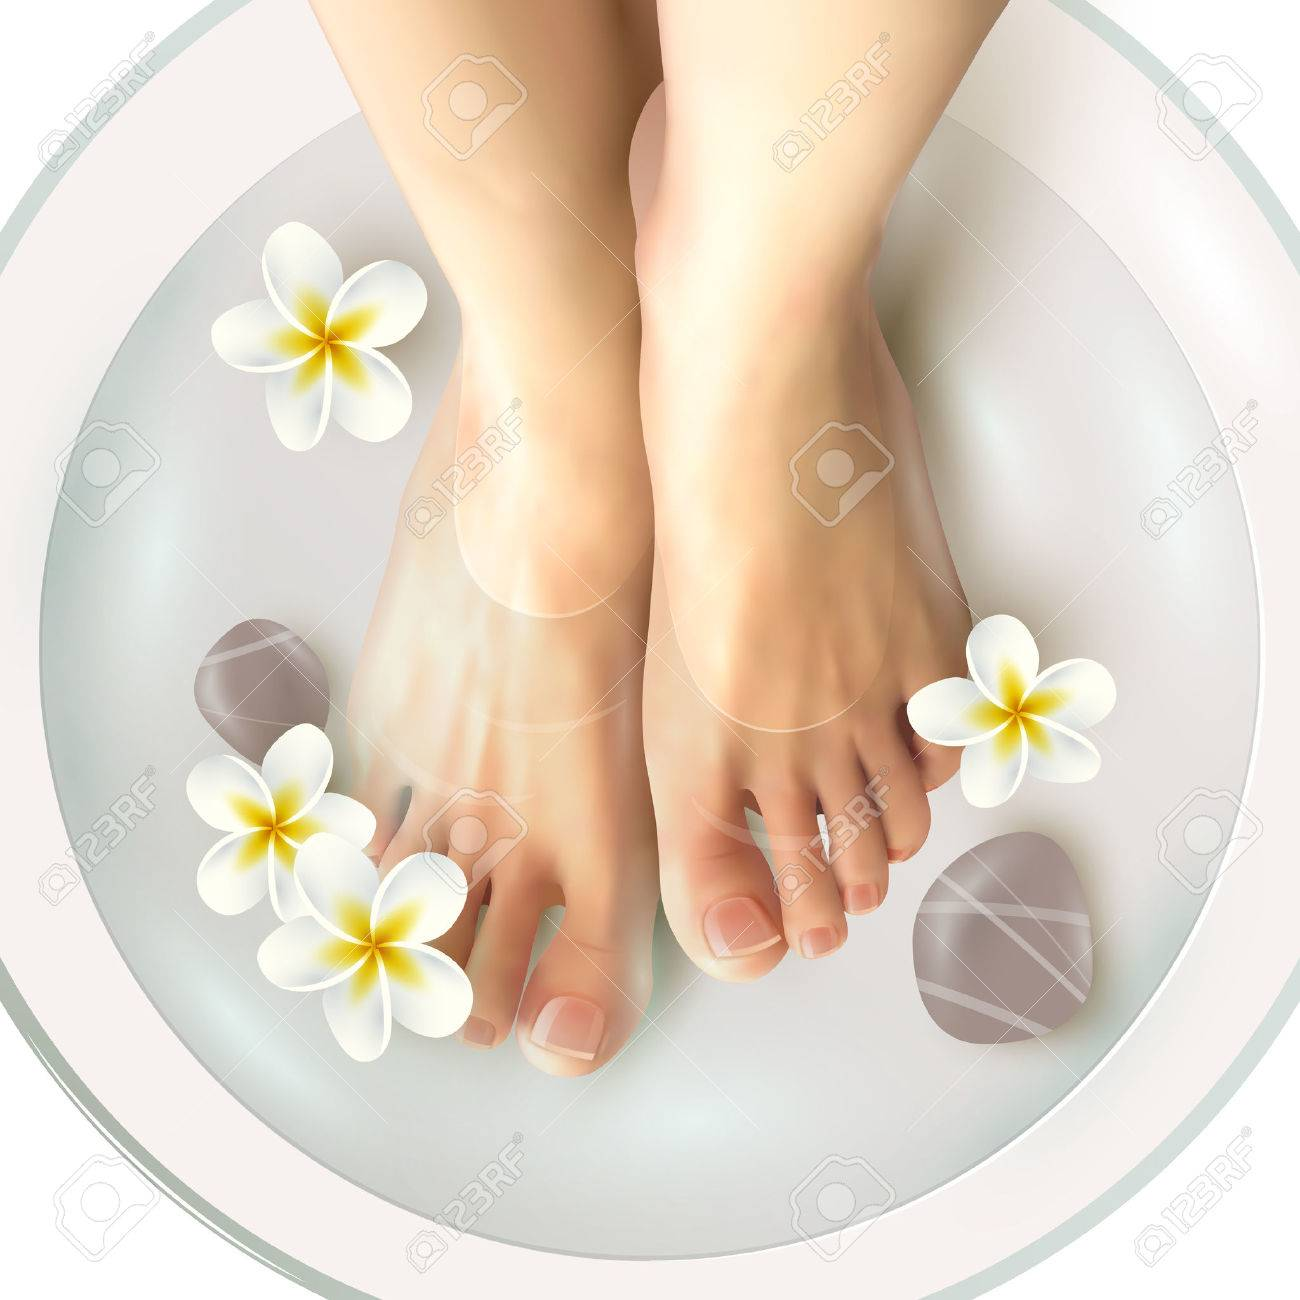 Pedicure spa female feet in spa bowl with water flowers and stones realistic vector illustration Stock Vector - 60299095